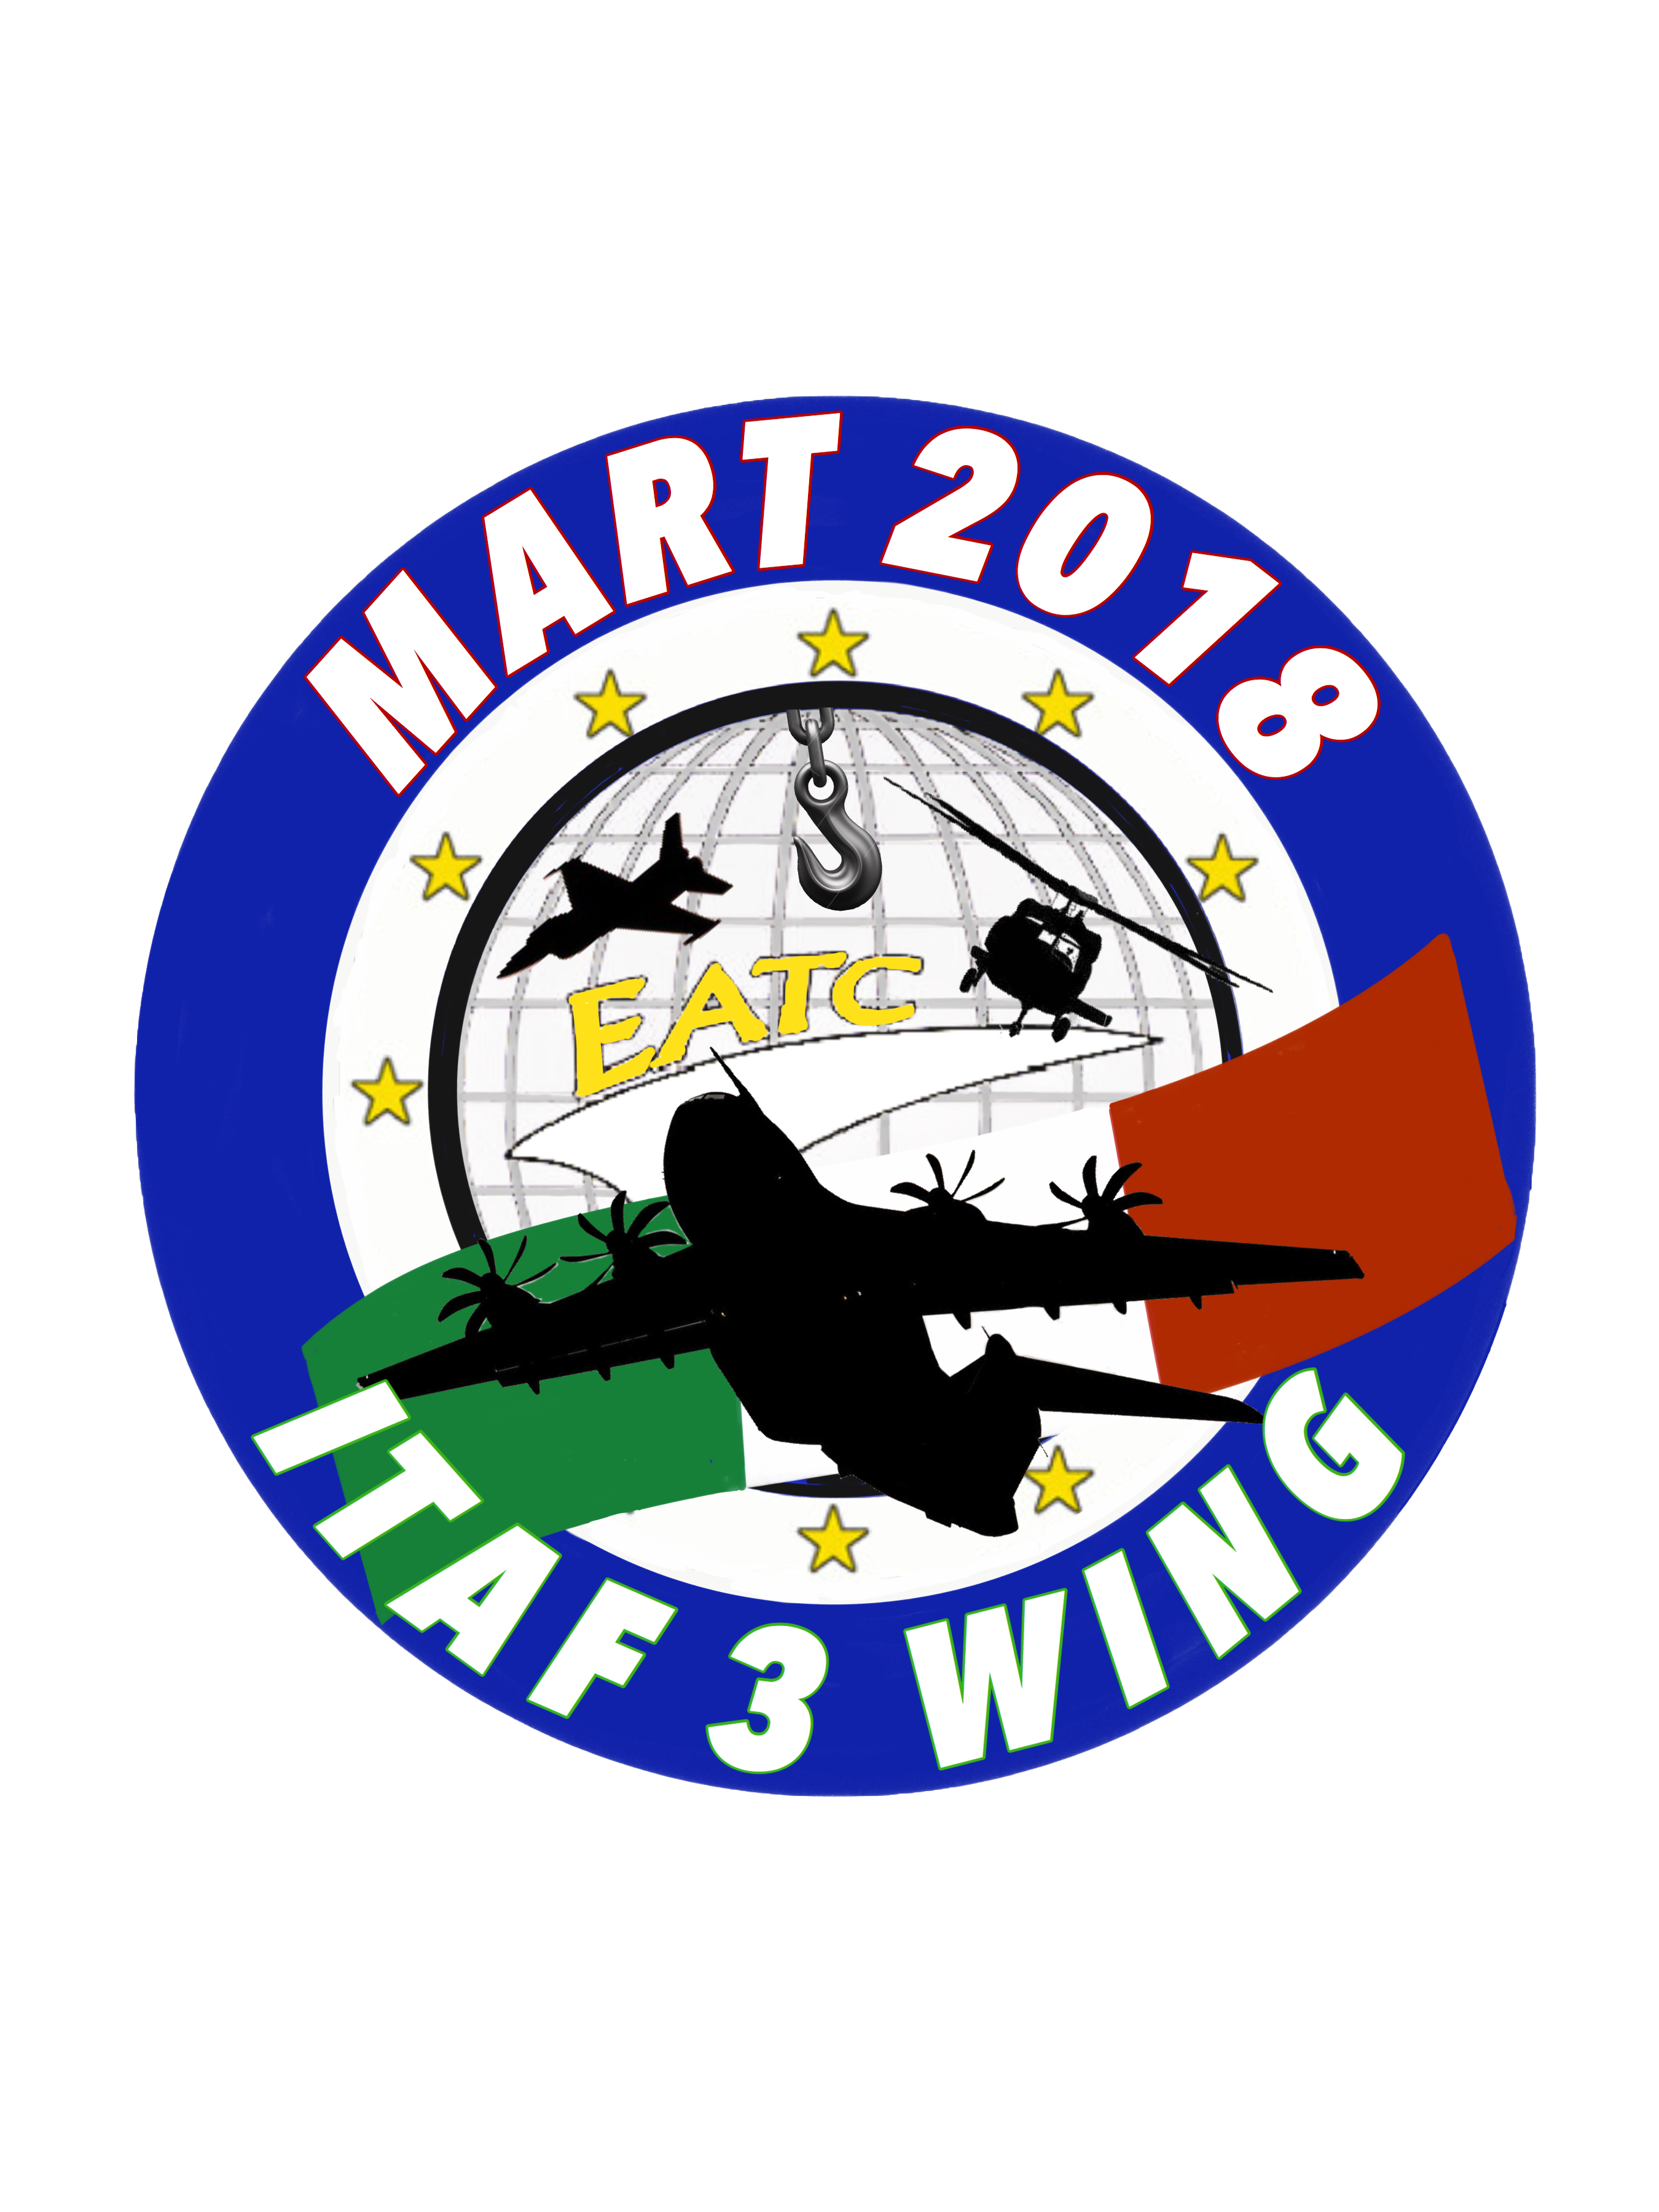 EATC's latest aide-mémoire for air recovery training introduced at MART 2018